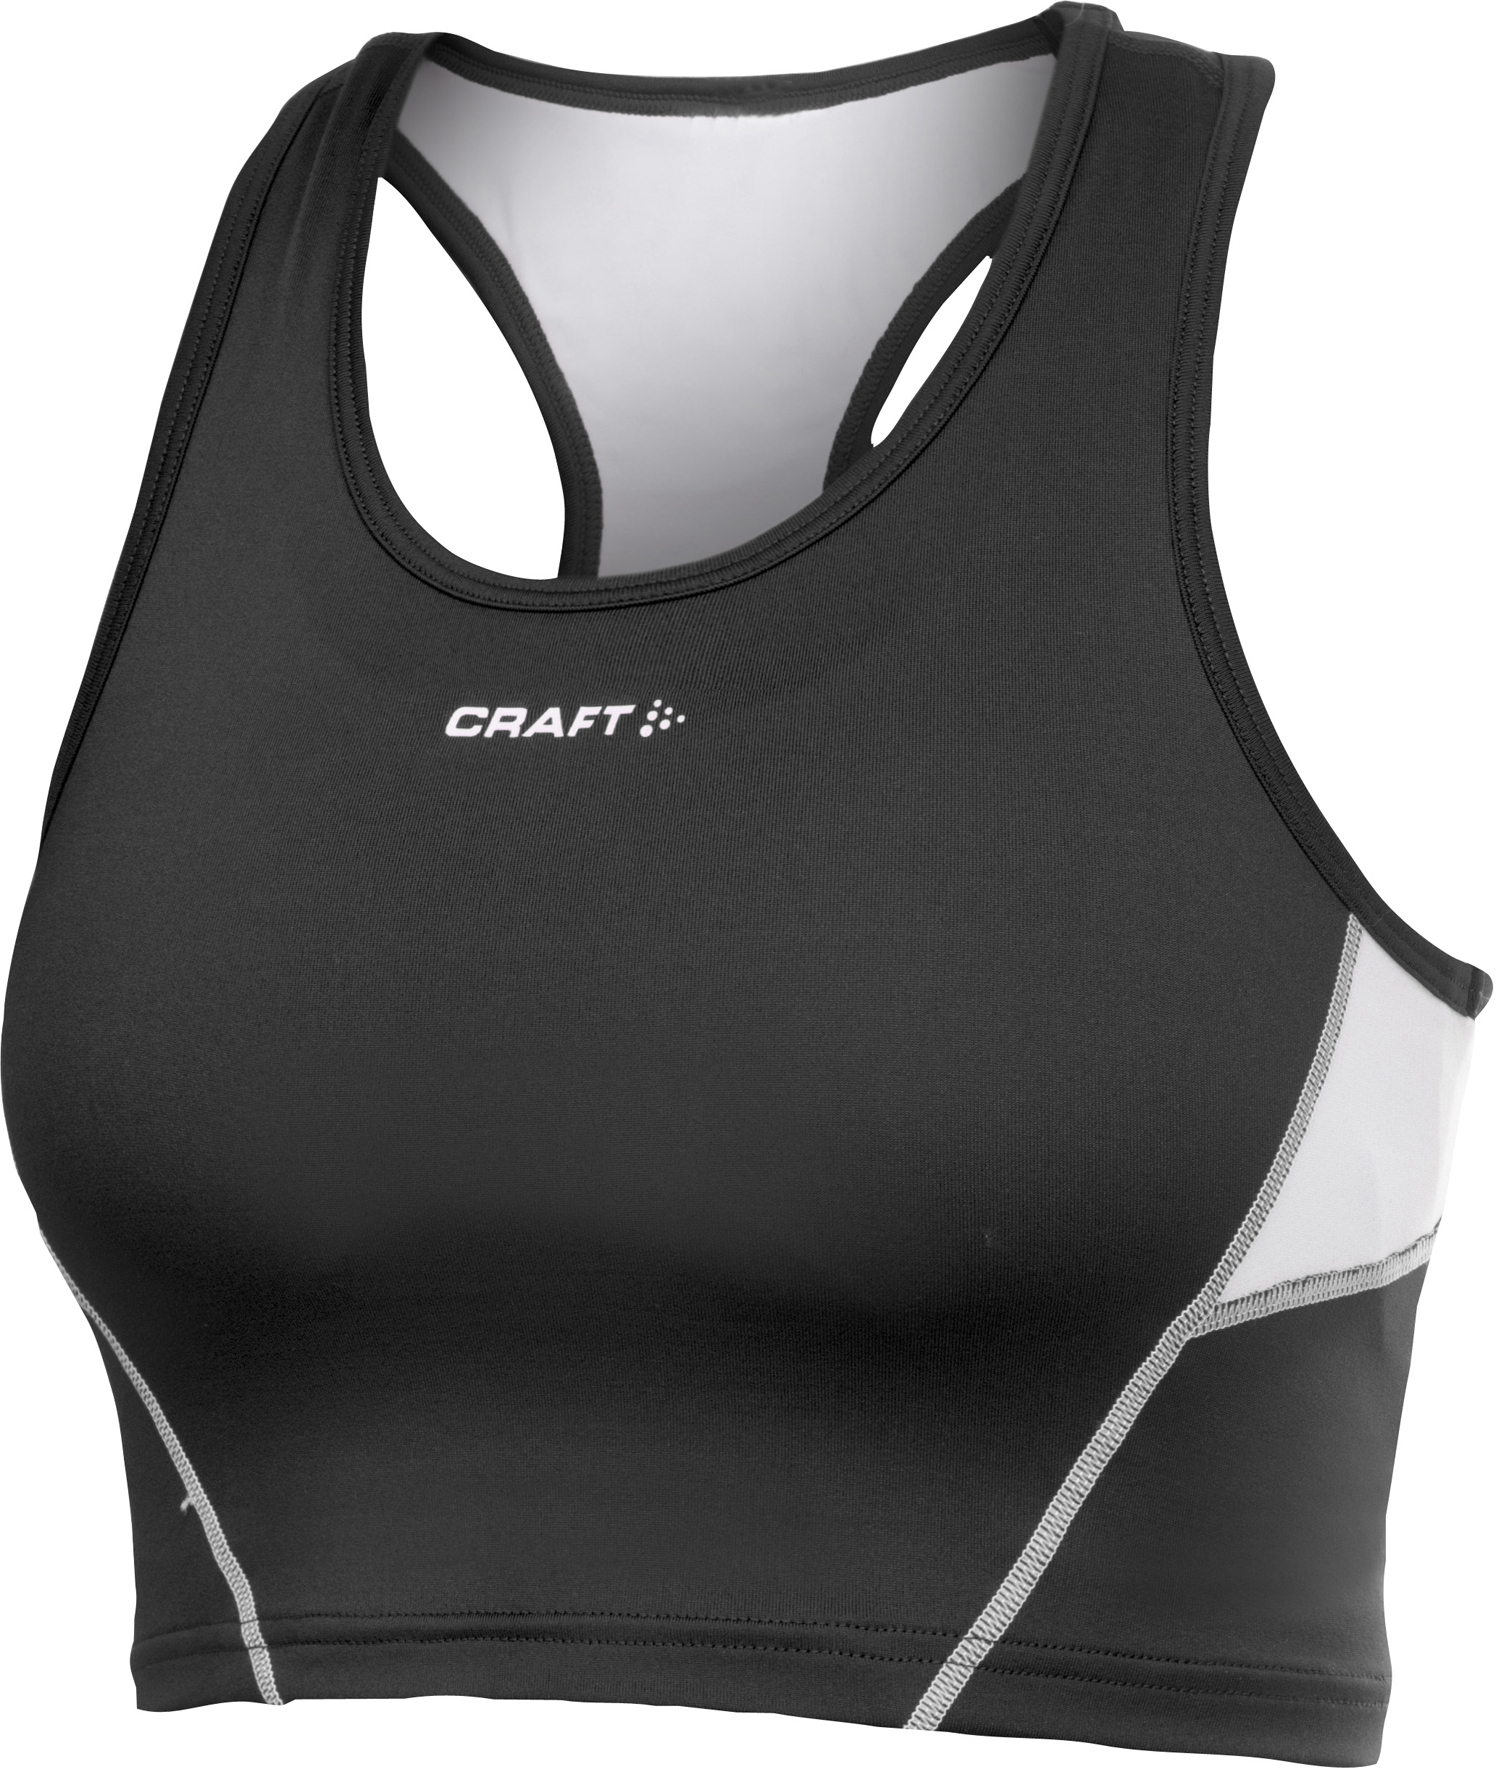 Женский топ CRAFT TRACK AND FIELD SPORT TOP black (1901245-2999)